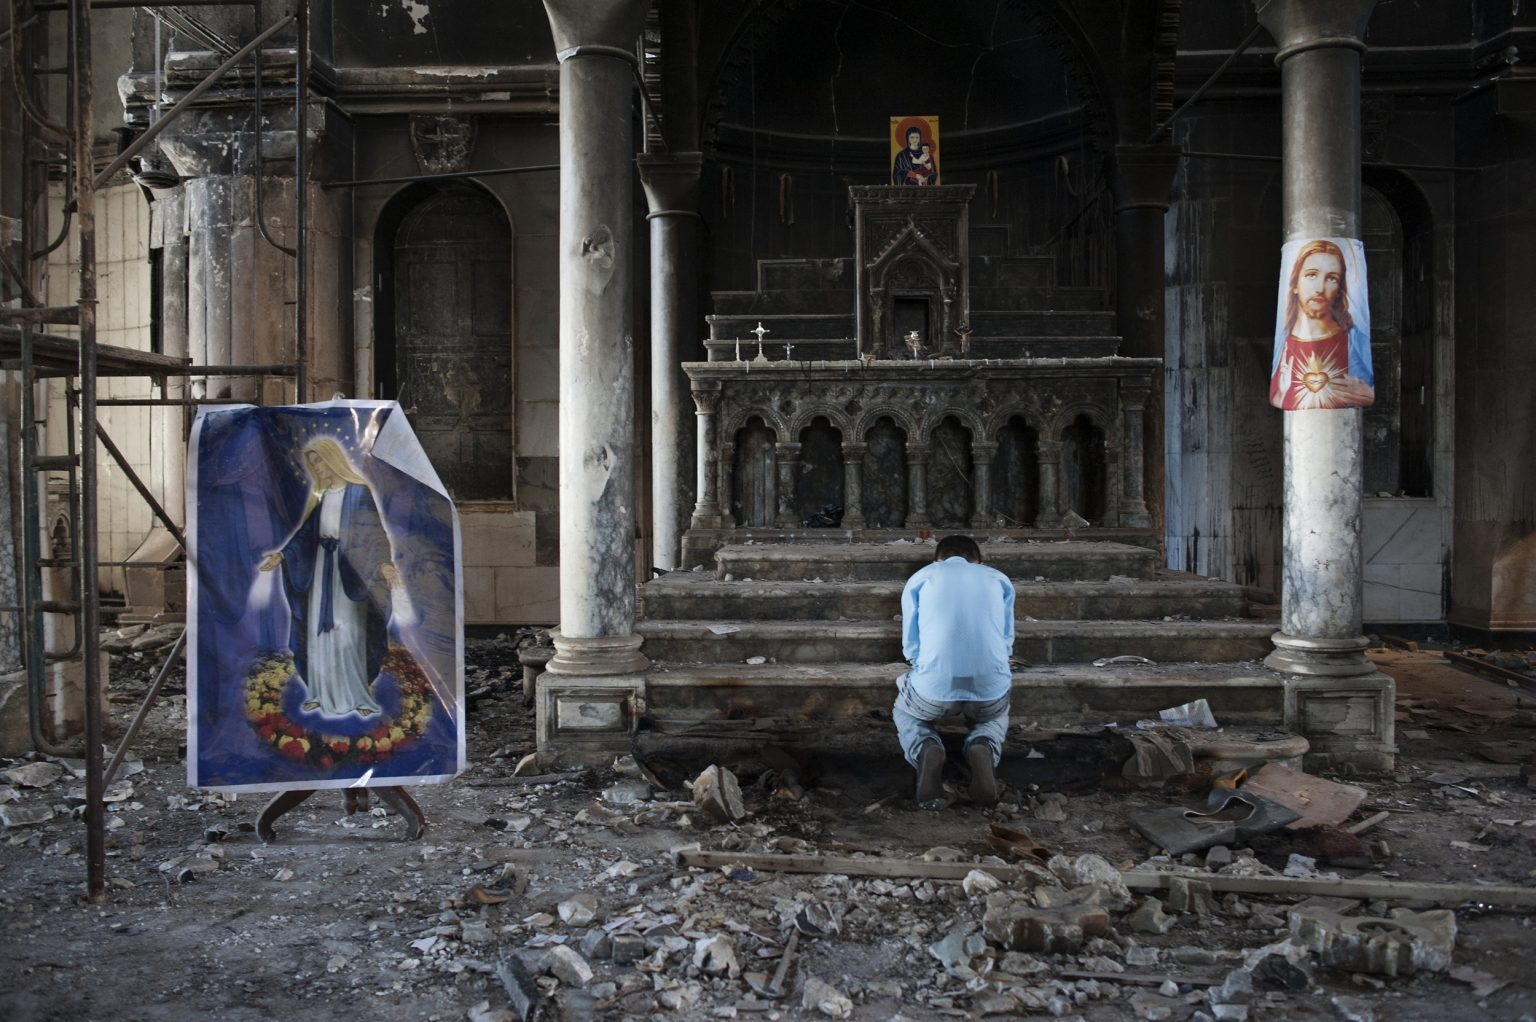 Qaraqosh, Iraq - October 30th 2016 - Archbishop Yohanna Petros Mouche  of Mosul leads a mass at the Church of the Immaculate Conception in the town of Qaraqosh (also known as Hamdaniya), 30 kms east of Mosul, after Iraqi forces recaptured it from Islamic State . The mass was the first after the freed of the town. Ph.Giulio Piscitelli